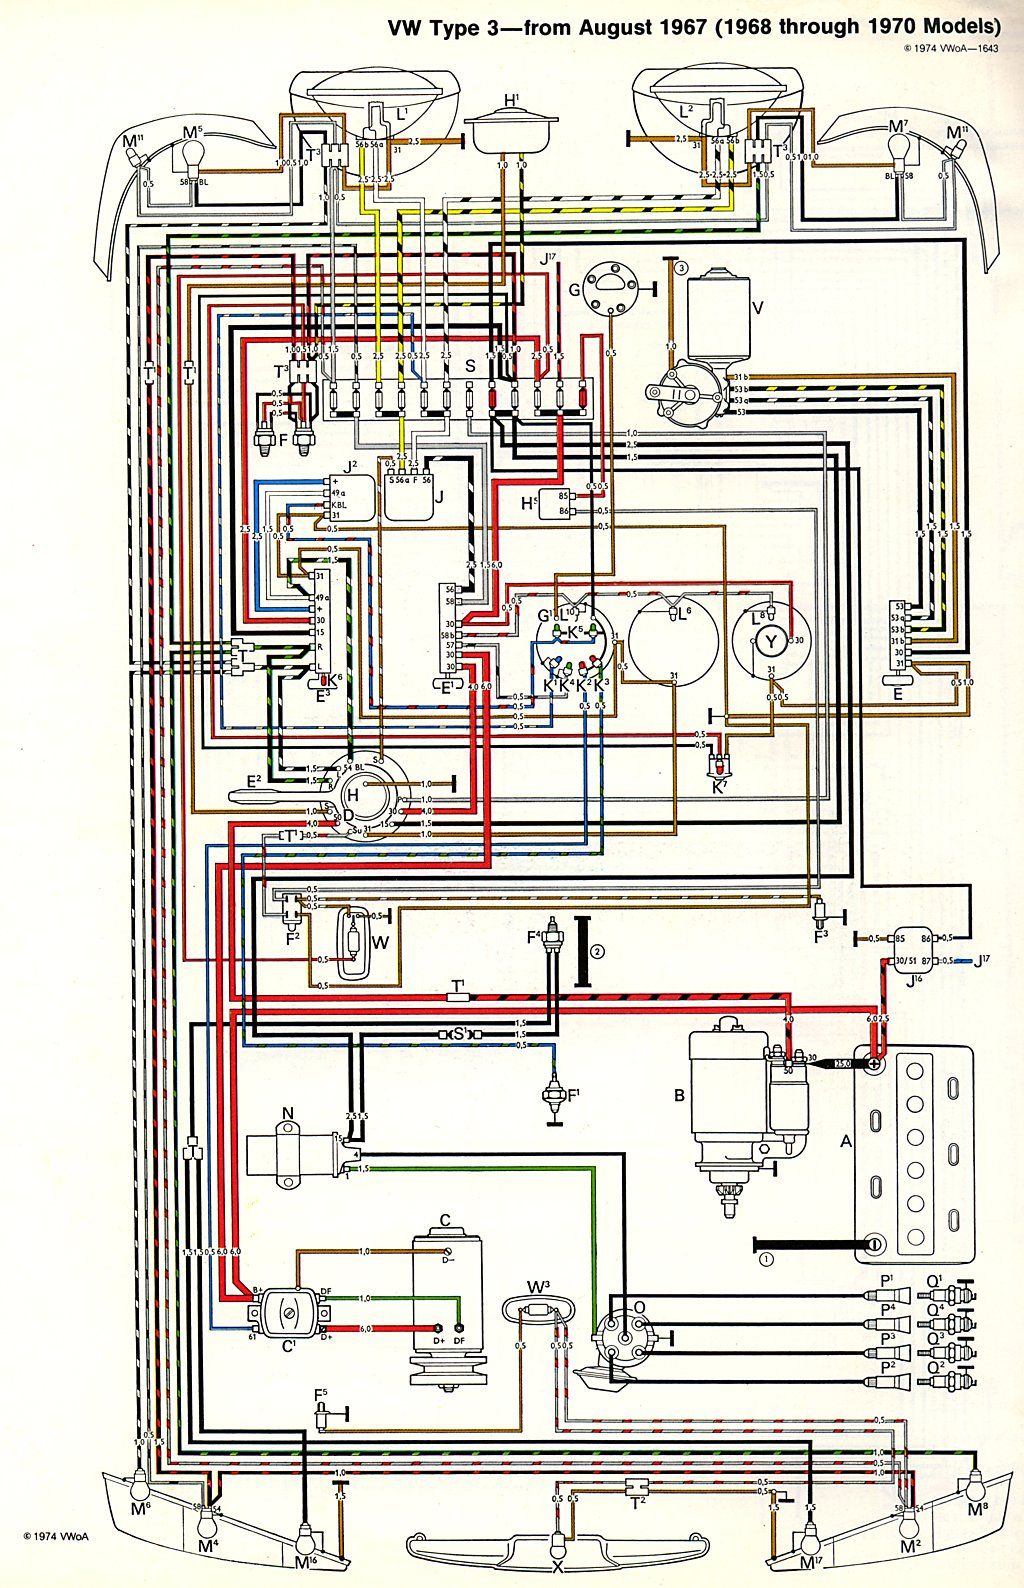 Vw Thing Wiring Harness Basic Diagram Schematics Diagrams U2022 Rh Seniorlivinguniversity Co Beetle